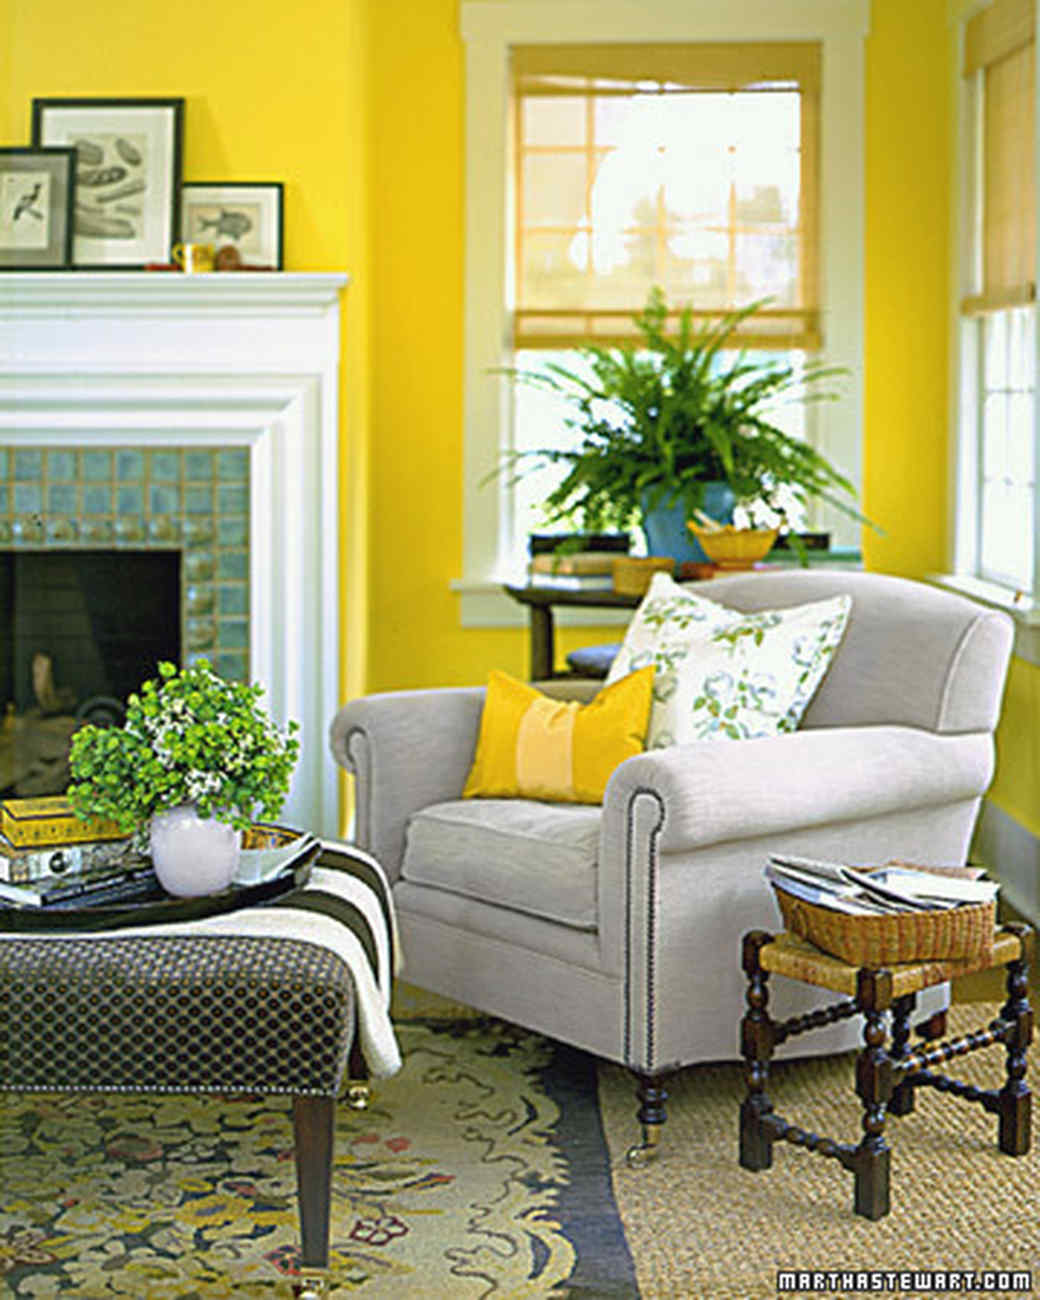 Decorating with Yellow and Orange | Martha Stewart